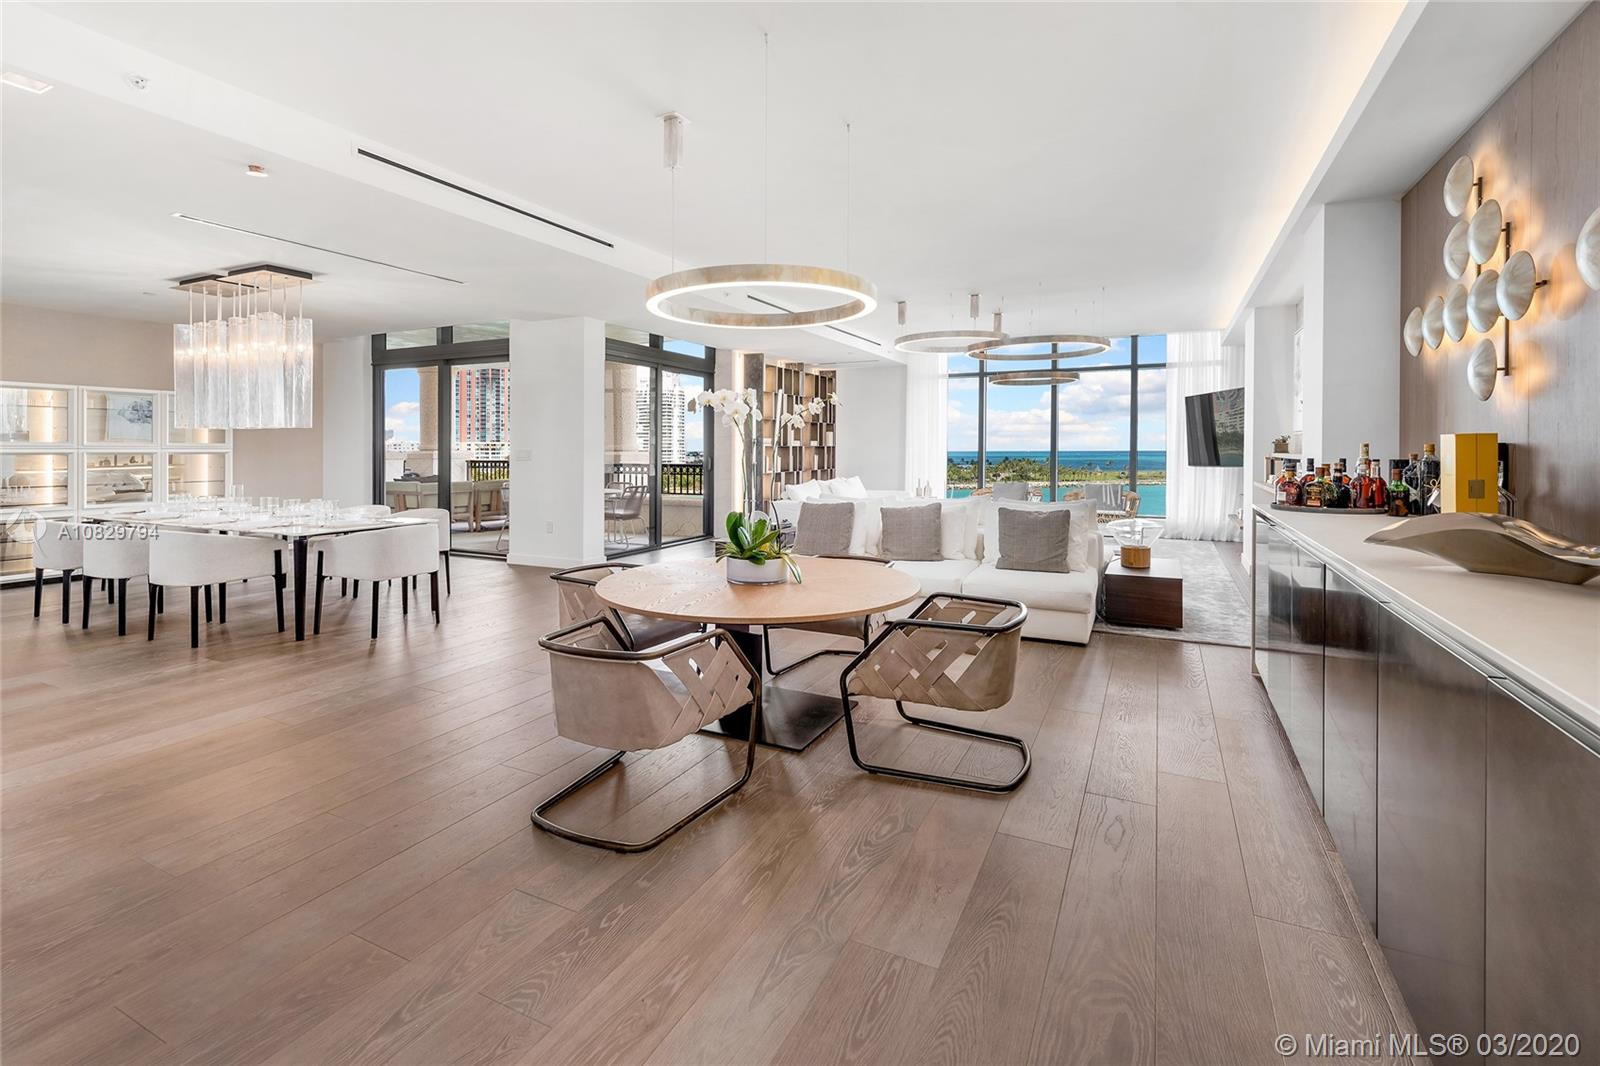 This turnkey, fully furnished designer unit by Henge at Palazzo Del Sol, the new luxury building on Fisher is stunning. No expense spared. This unit features 3,793 SF, private elevator entry, oak floors throughout, custom wallpapers, lighting, millwork & built-ins. Spacious open flow-thru layout w/extended living, family & dining areas with amazing views to Govt. Cut, city & Ocean. The chic gourmet Boffi kitchen sports top-of-the-line Gaggenau appliances & exotic stone counter tops/backsplash. A private principal suite offers direct terrace access & water views, & Book-Matched Statuario marble bath with walk-in glass-marble rain shower & sunken oval tub. The other 2 bedrooms w/en-suite baths & a shared terrace w/views to Fisher Island & Miami skyline. 5-Star Palazzo Del Sol amenities.